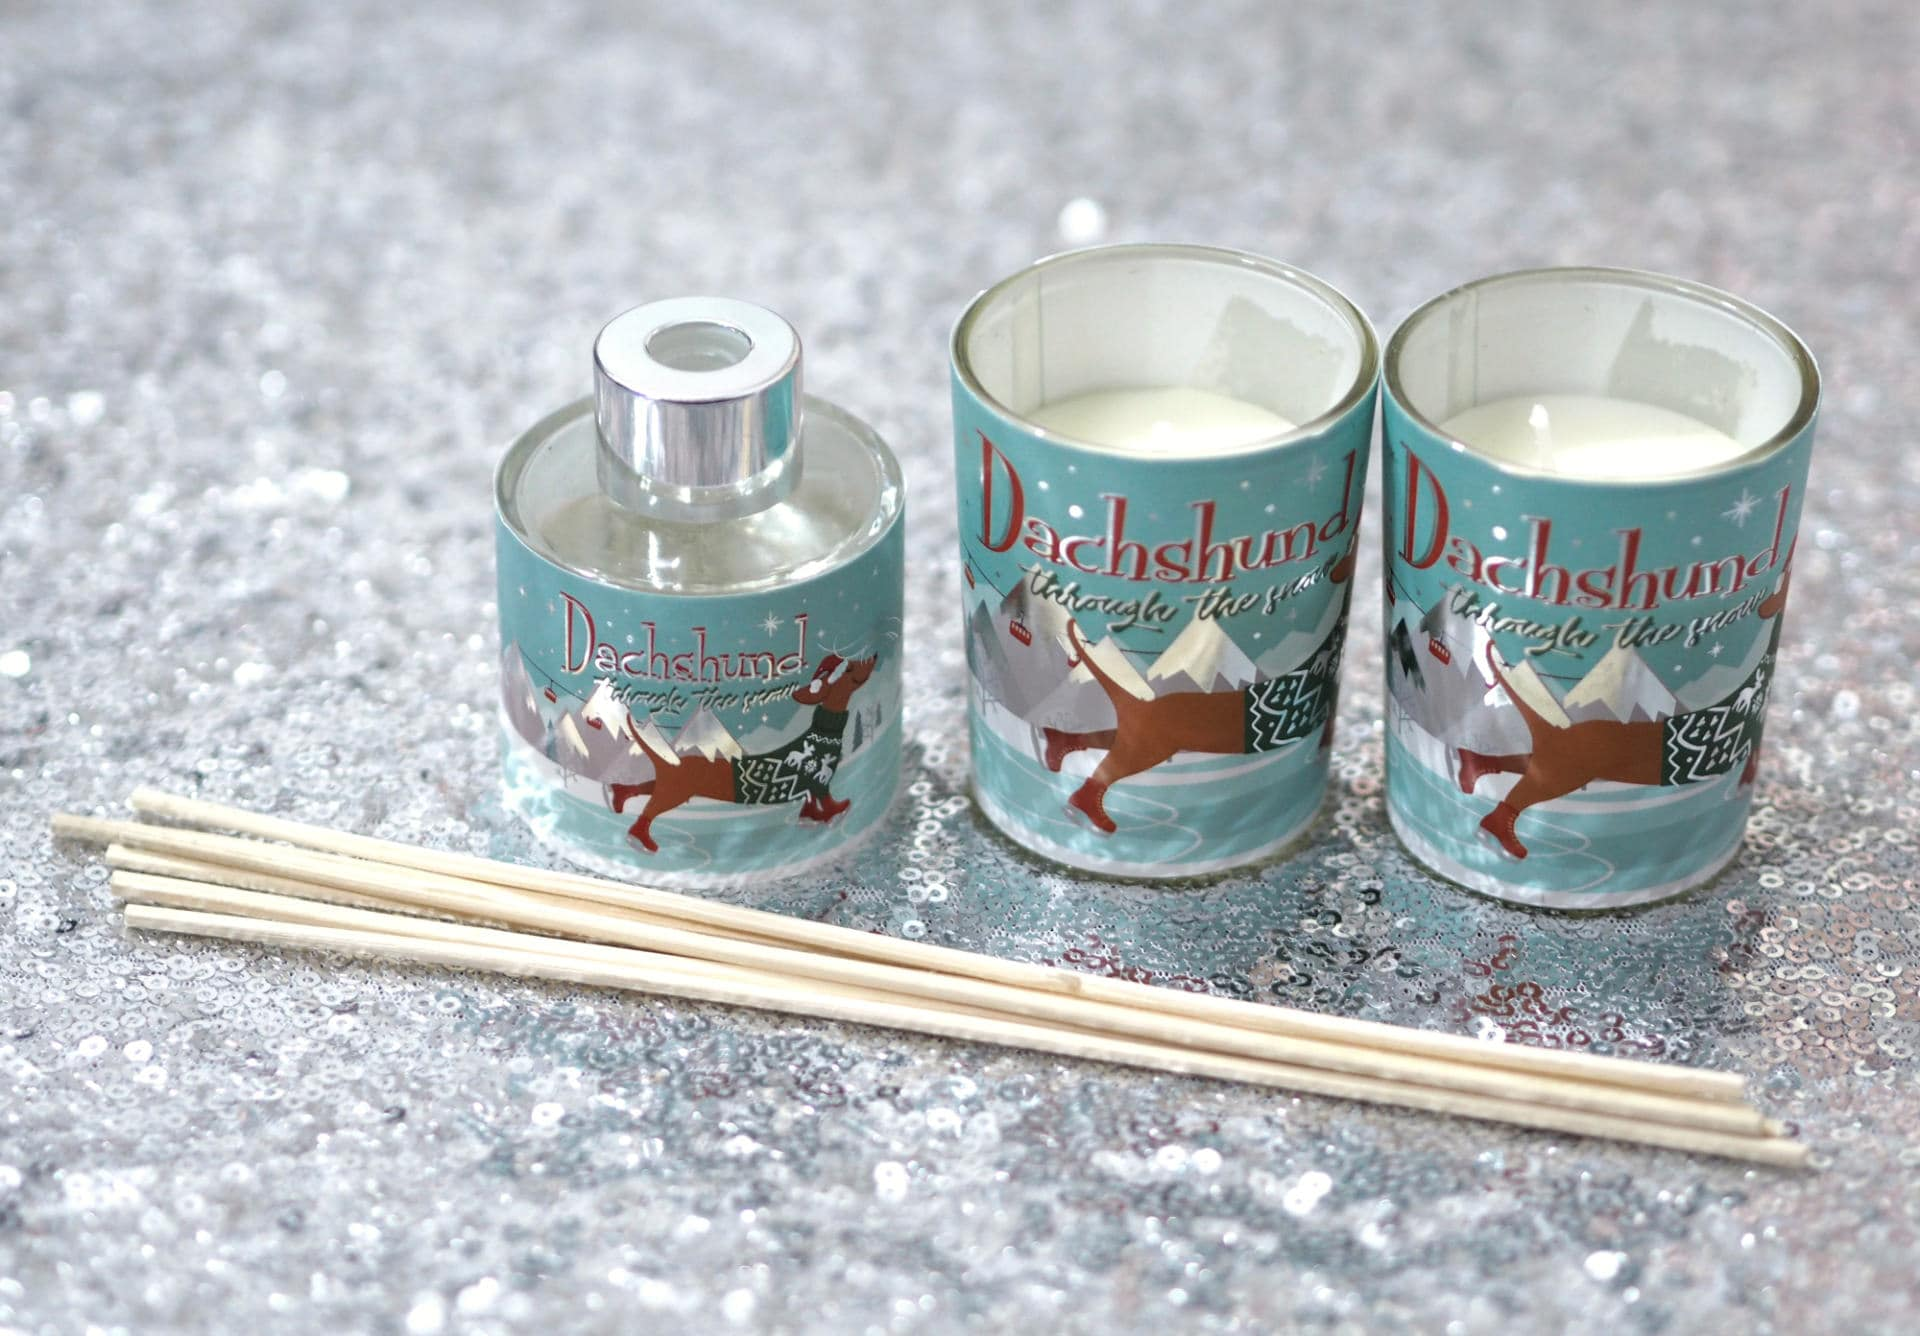 Christmas Stocking Filler Gift Guide 2019 - Christmas Dachshund Candle & Diffuser Set